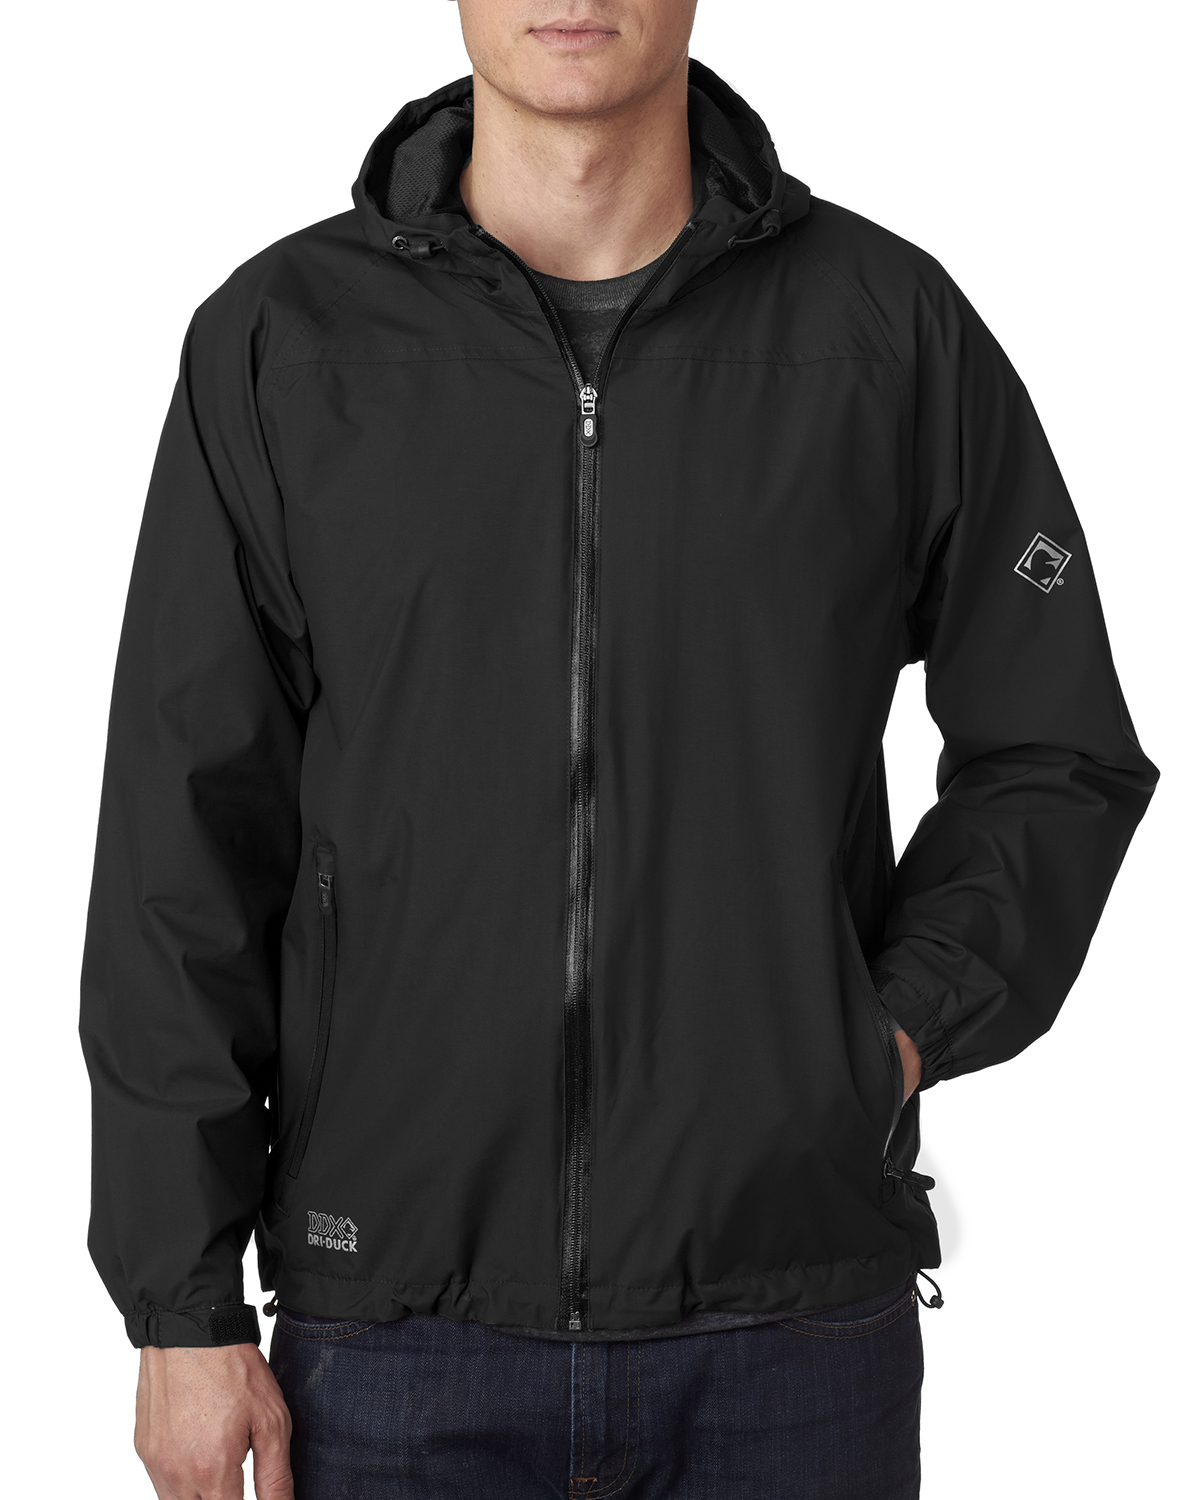 Dri Duck 5335 - Adult Torrent Jacket